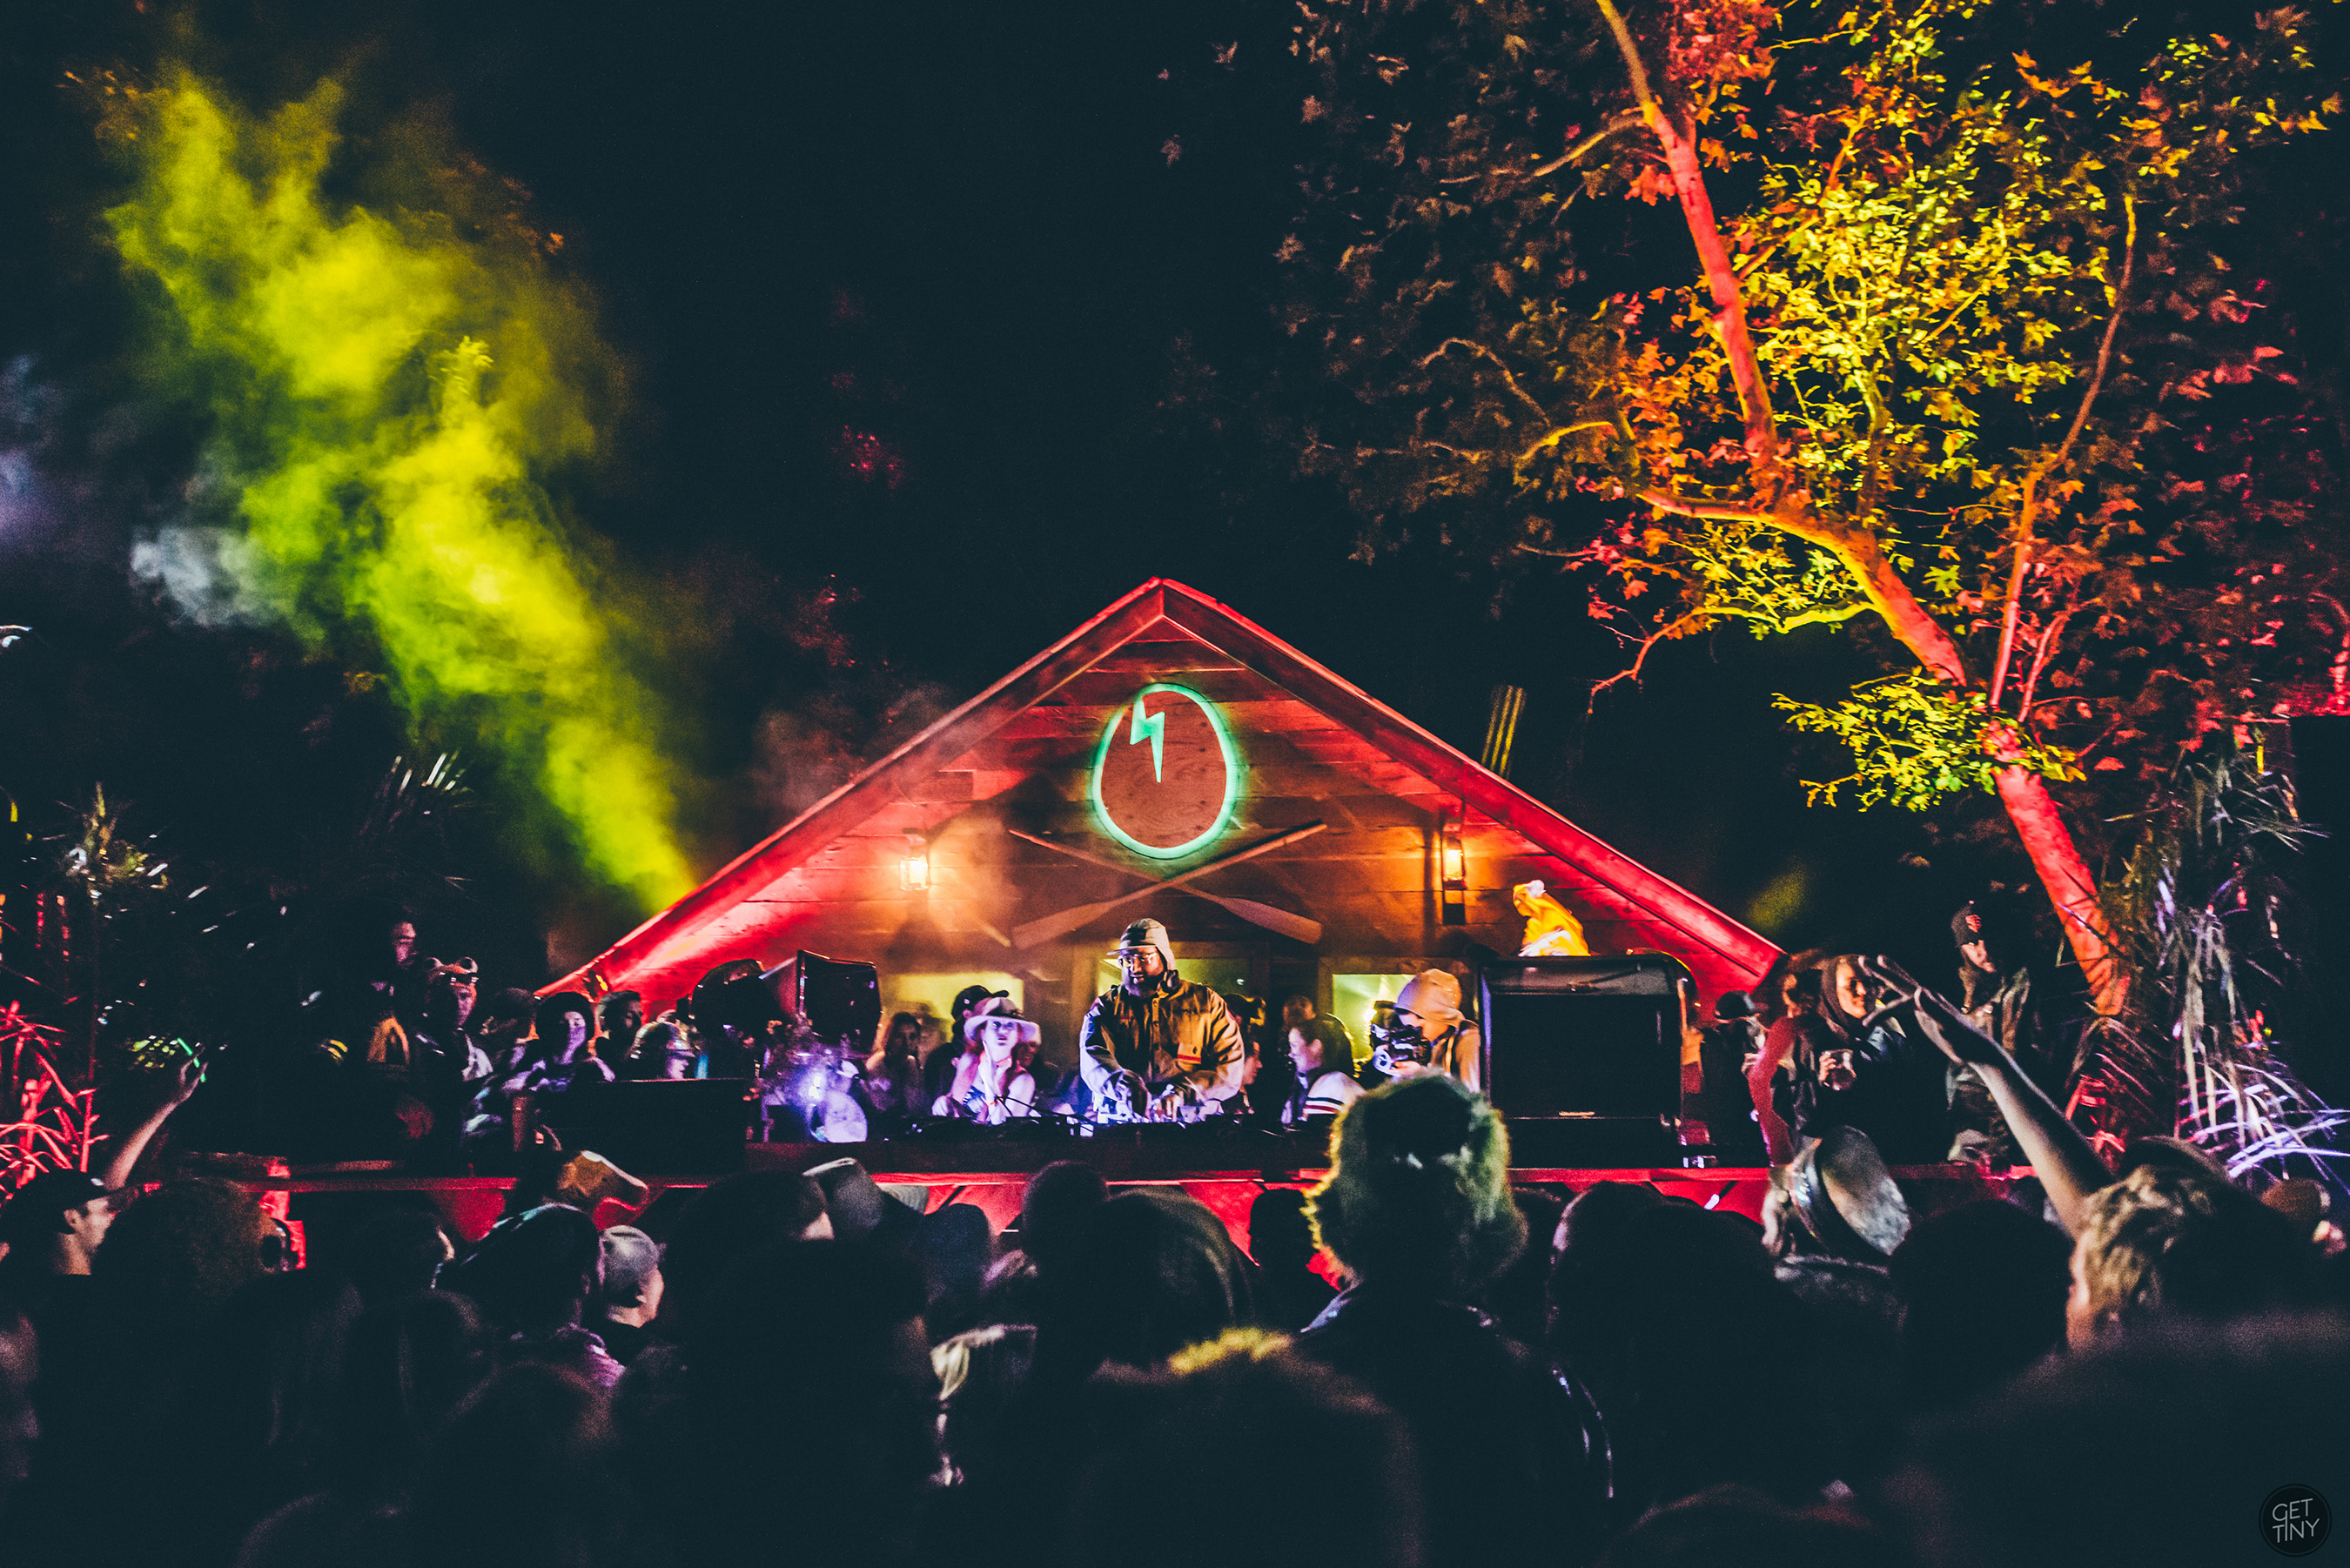 DIRTYBIRD members premiere the Smirnoff Sound Collective documentary at 2nd annual Campout in Silverado, California.